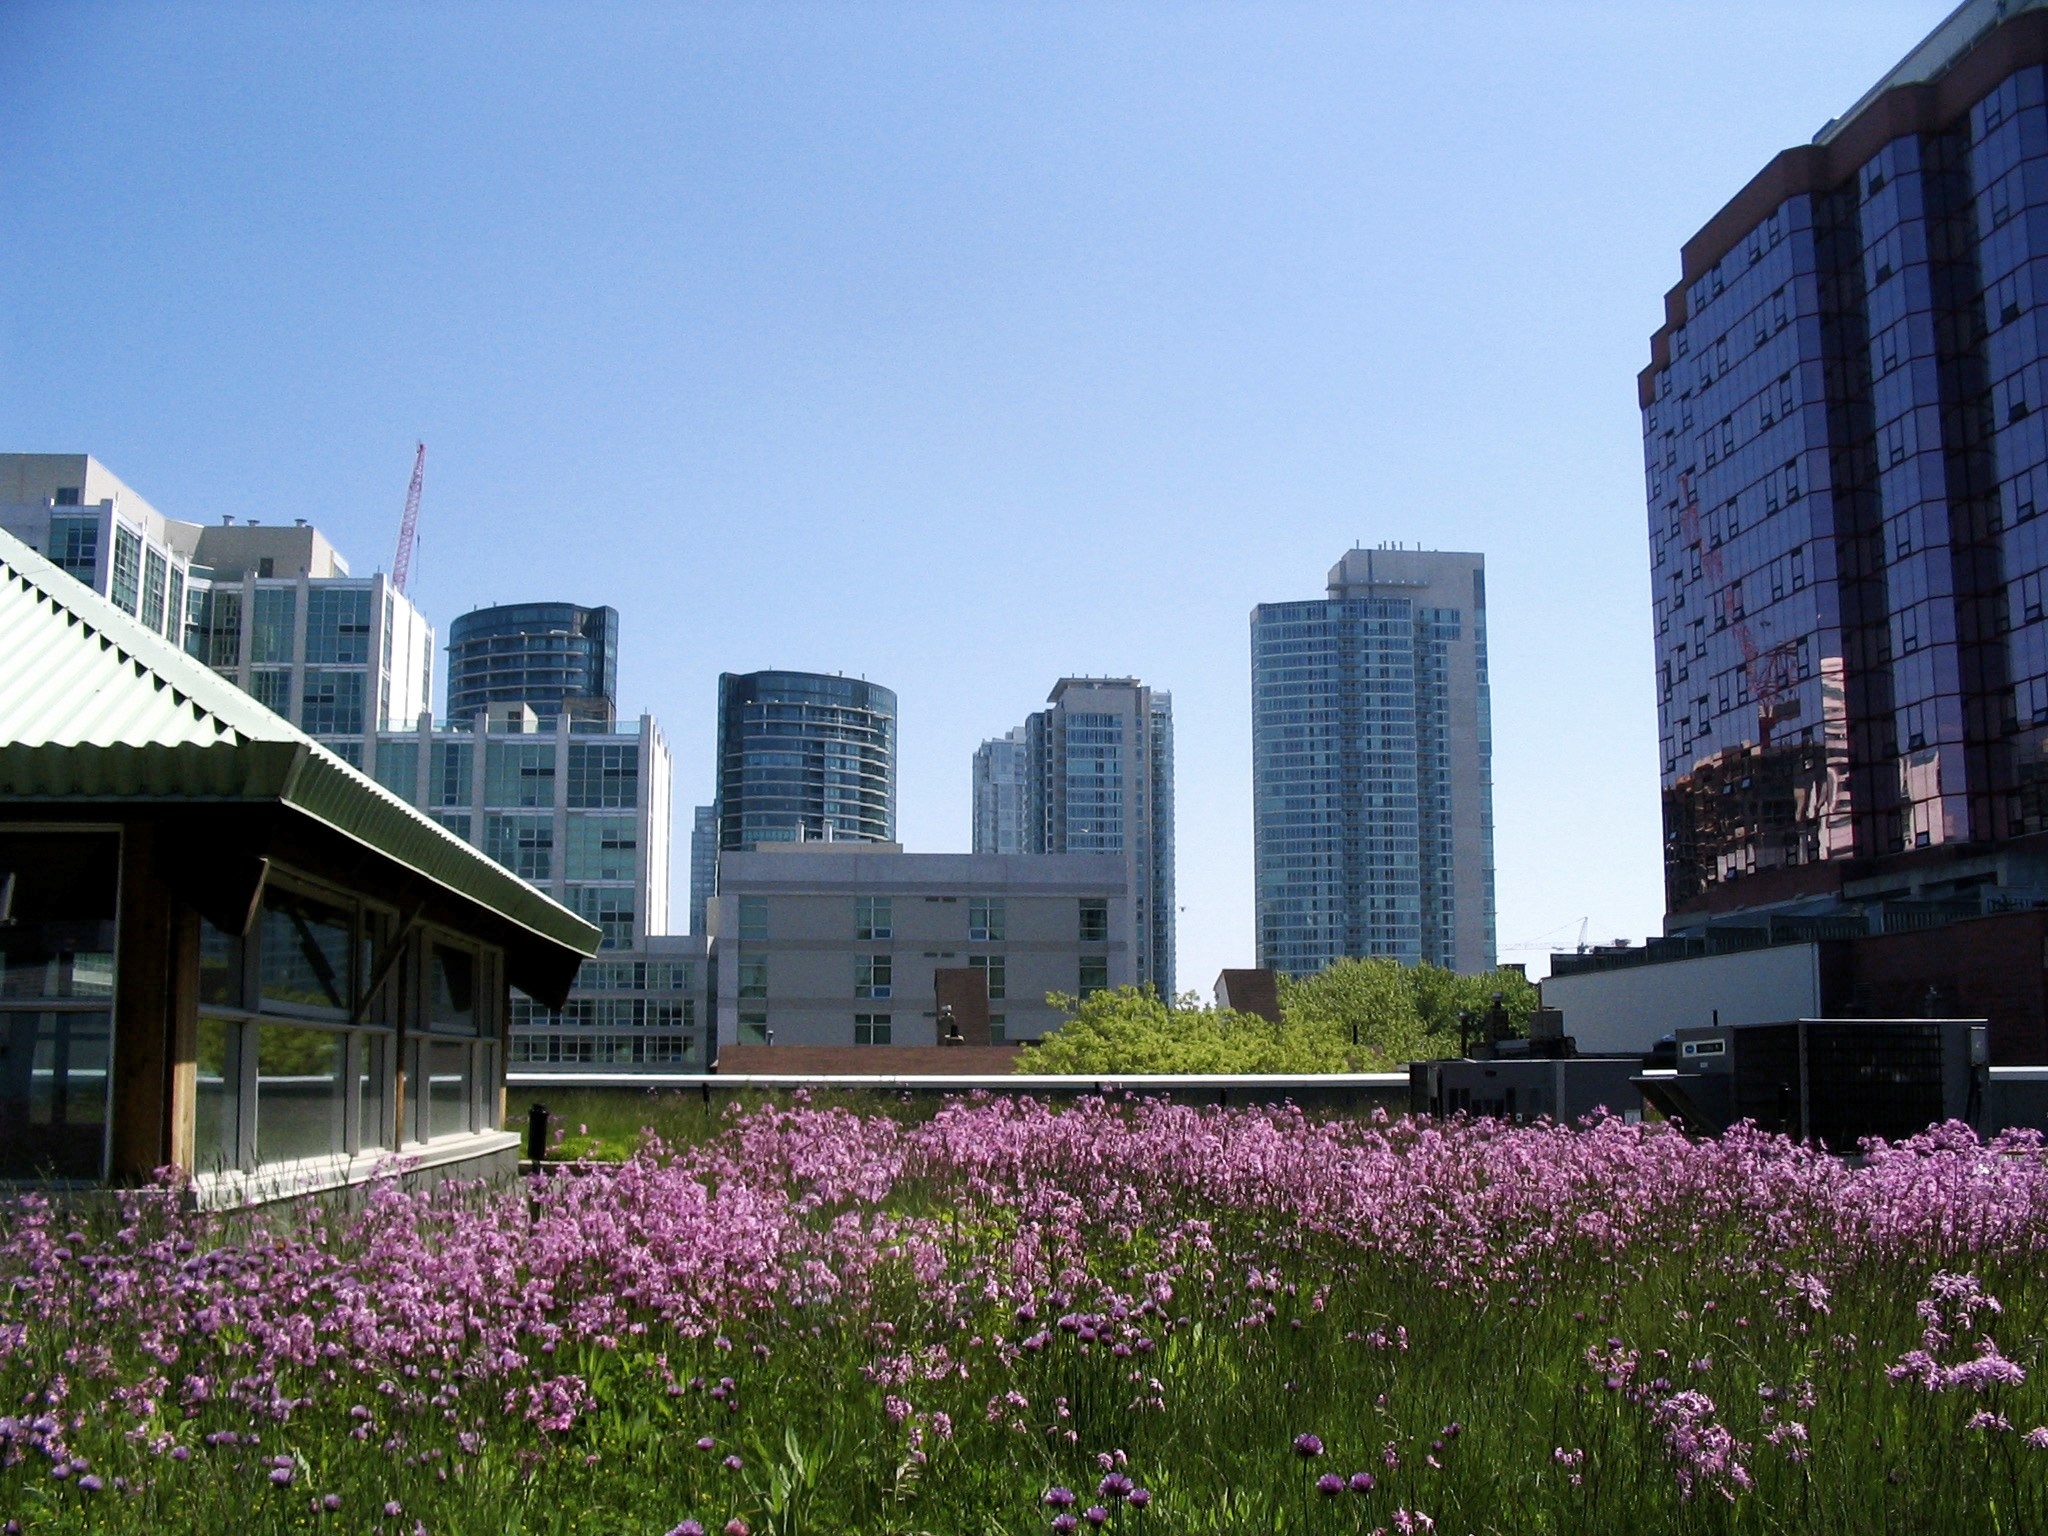 MEC's_green_roof_among_others.jpg